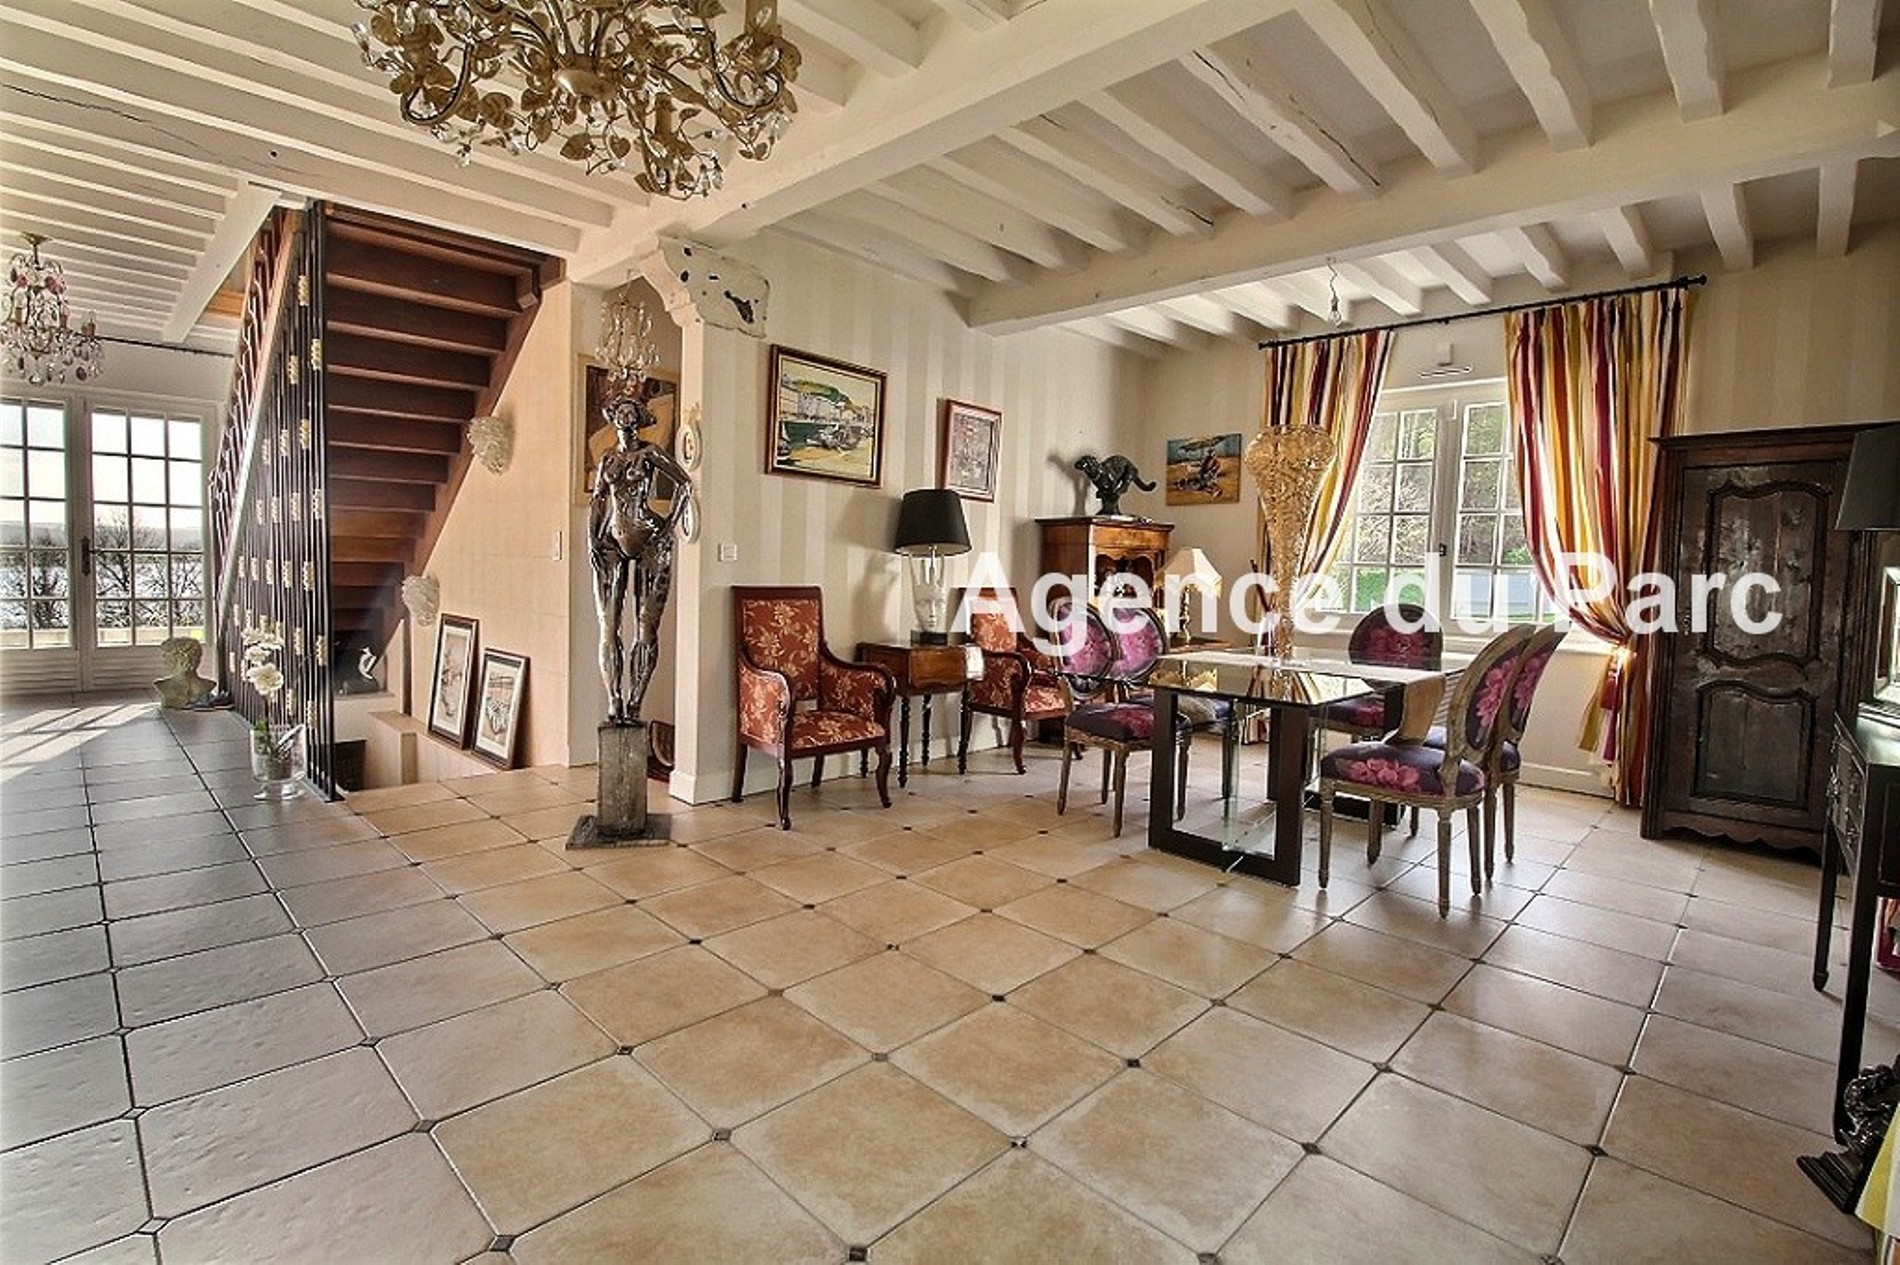 Acheter vente d 39 une maison de caract re colombages for Achat maison 2h de paris